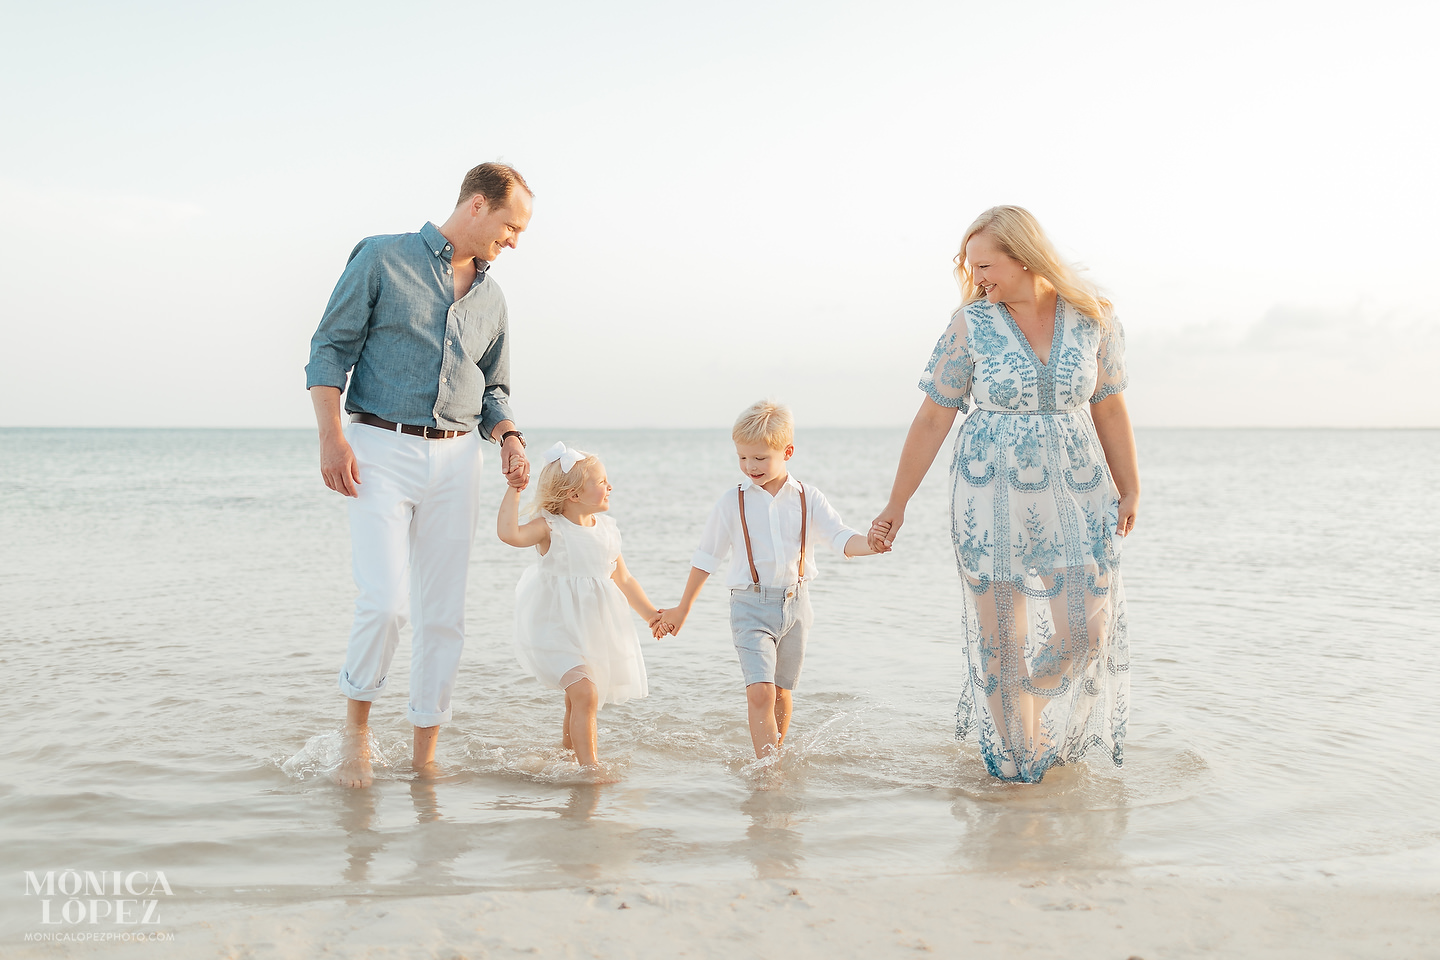 Club Med Cancun Family Portraits - Judd Family by Monica Lopez Photography